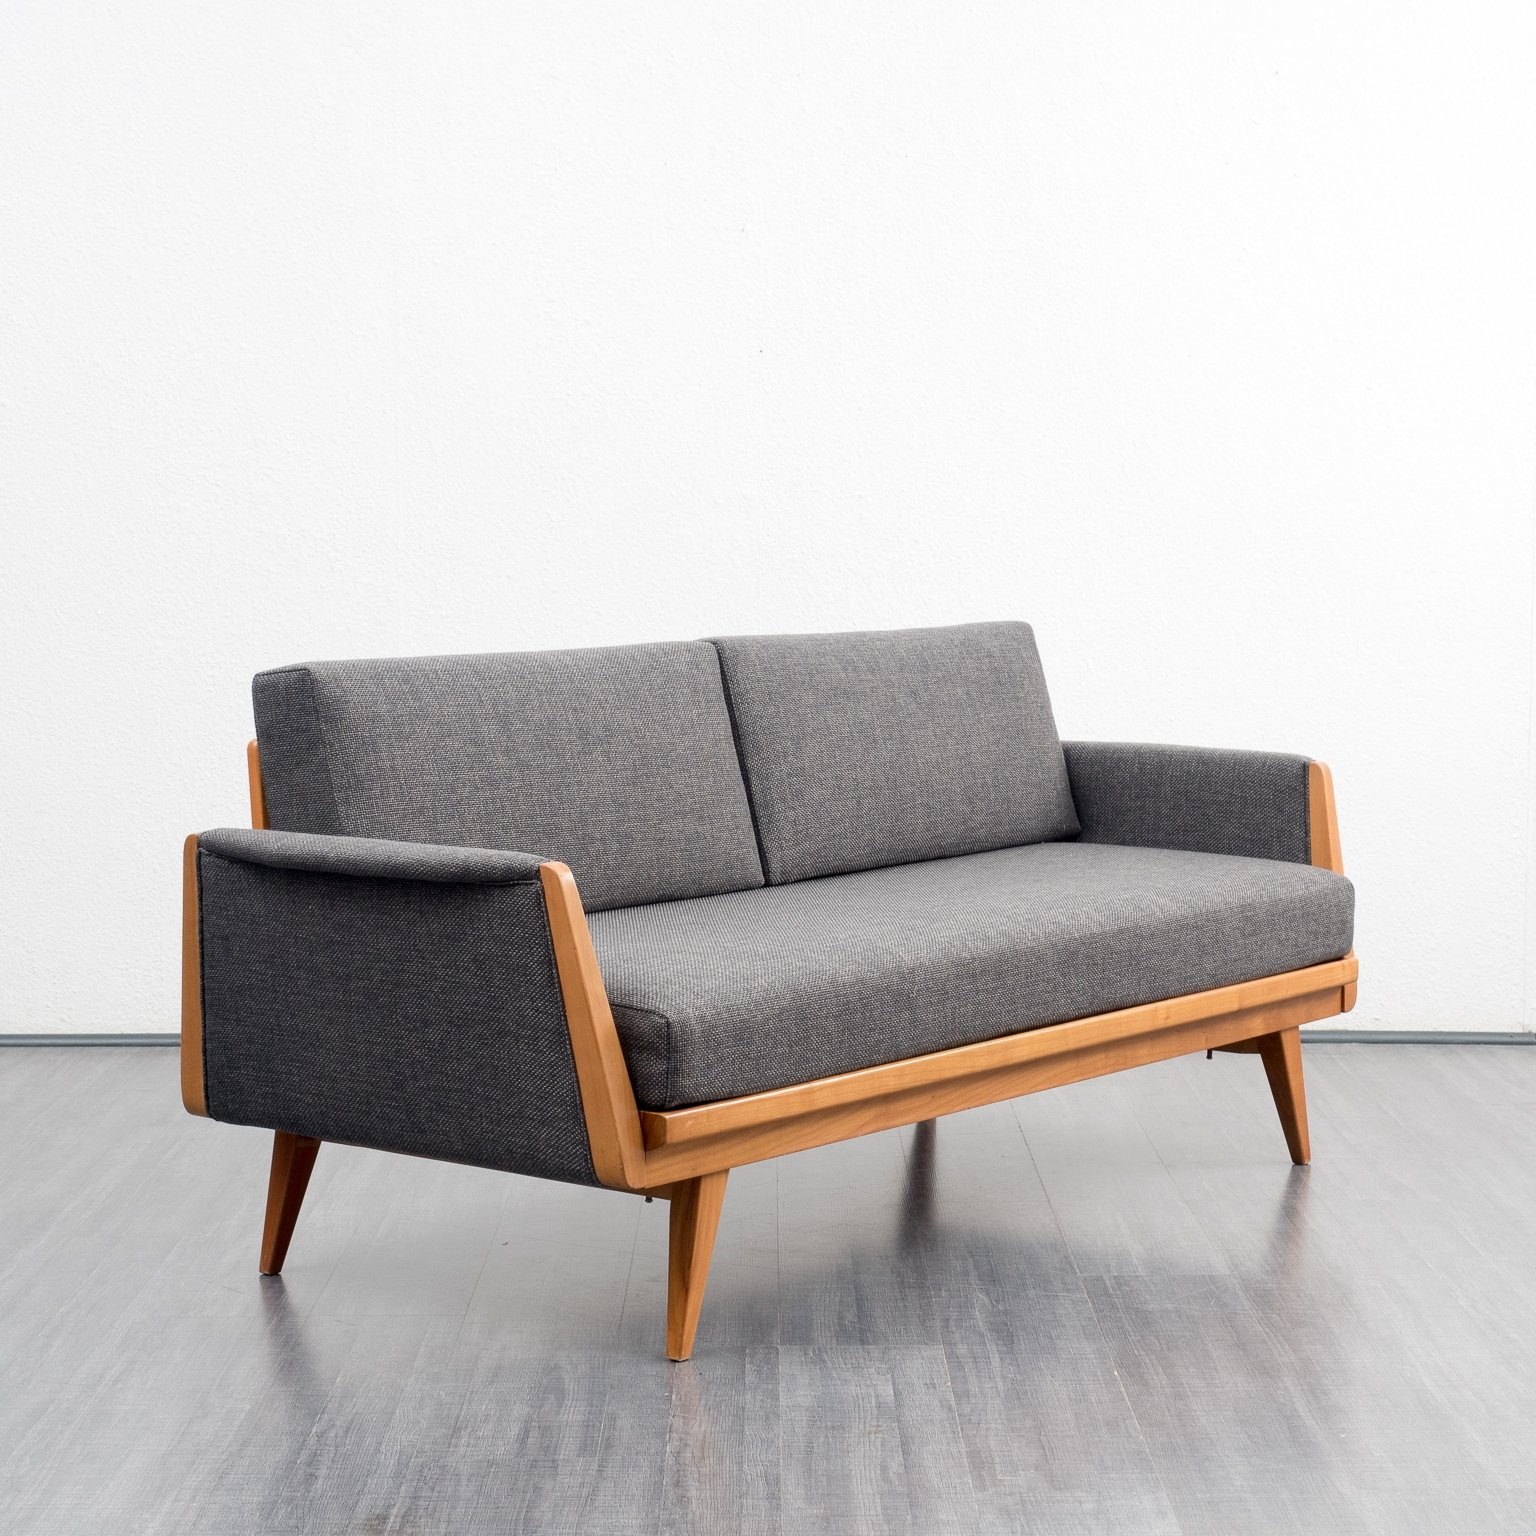 Sofa From The Fifties By Unknown Designer For Knoll Antimott 64592